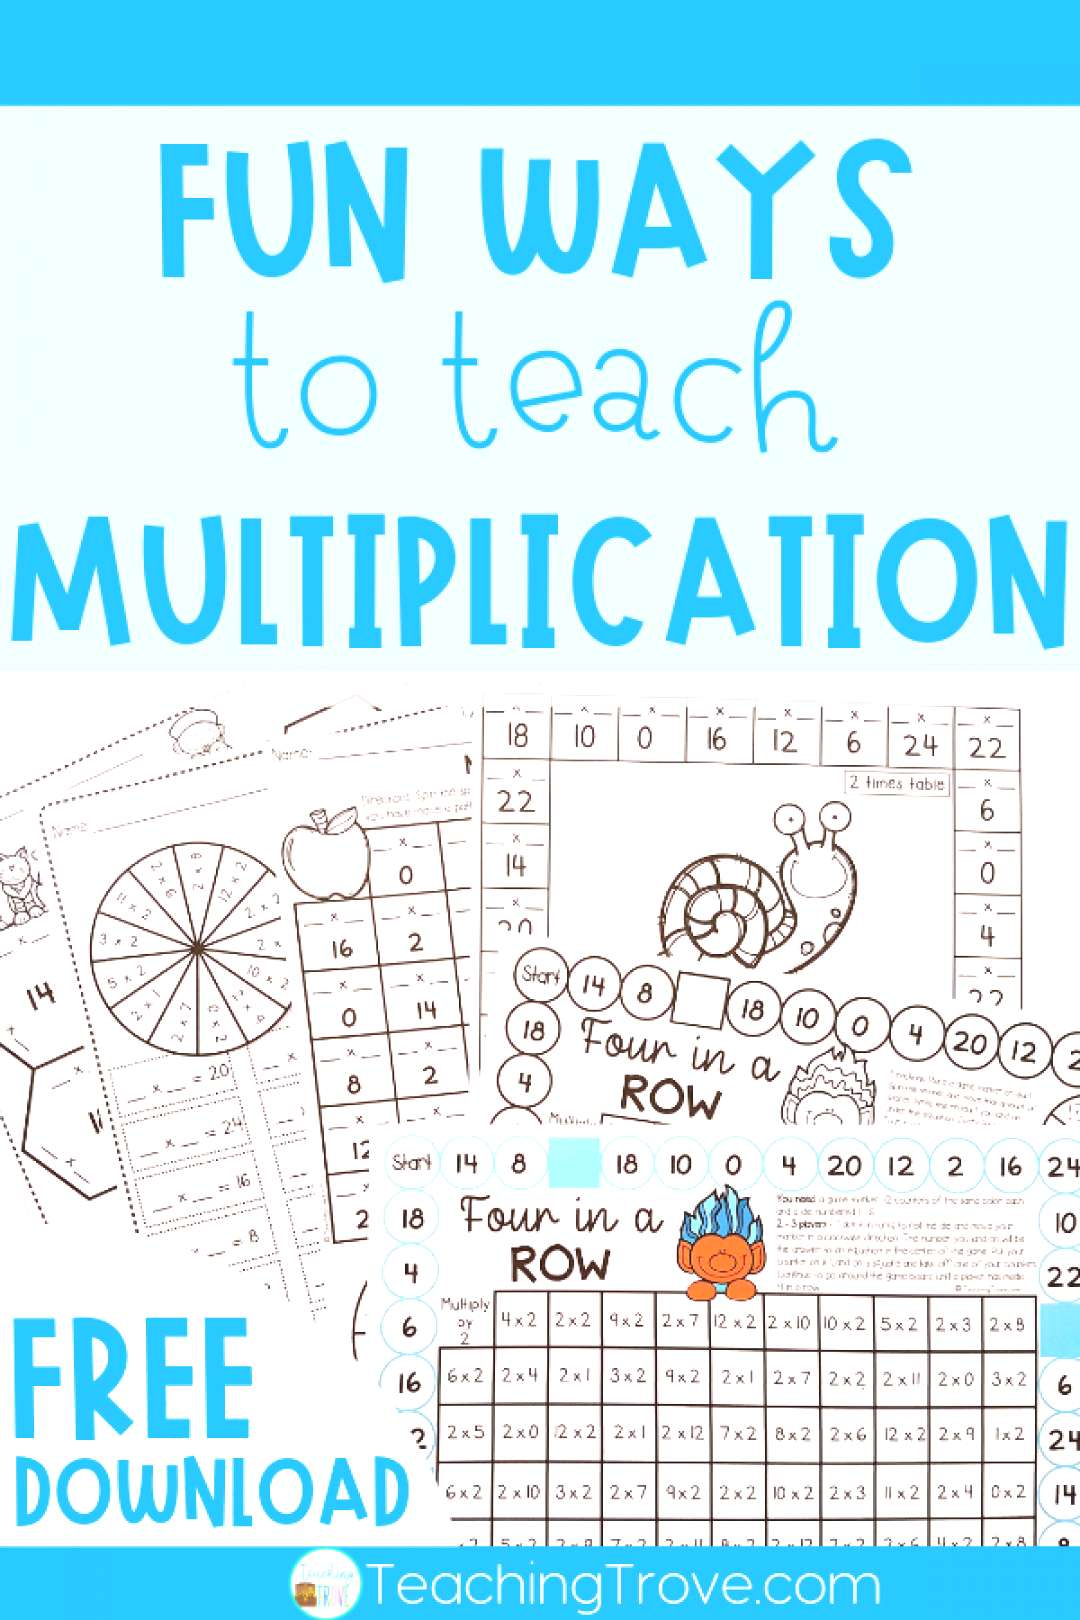 Teaching multiplication to your 3rd grade students should be fun. Use anchor charts and flip books